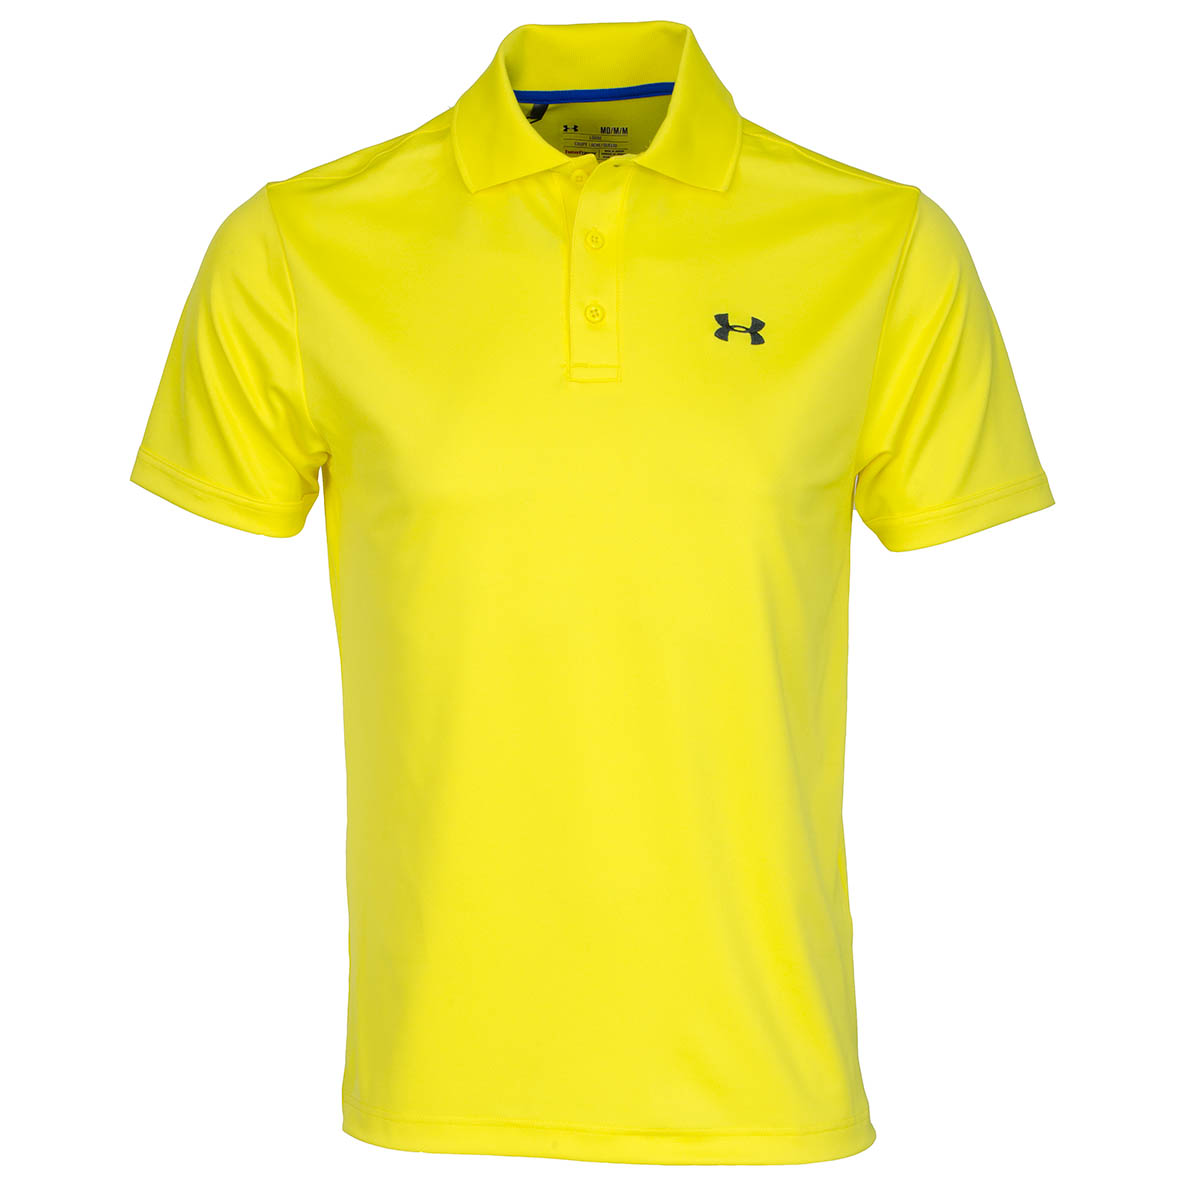 Under armour performance polo shirt sunbleached stealth for Under armour embroidered polo shirts